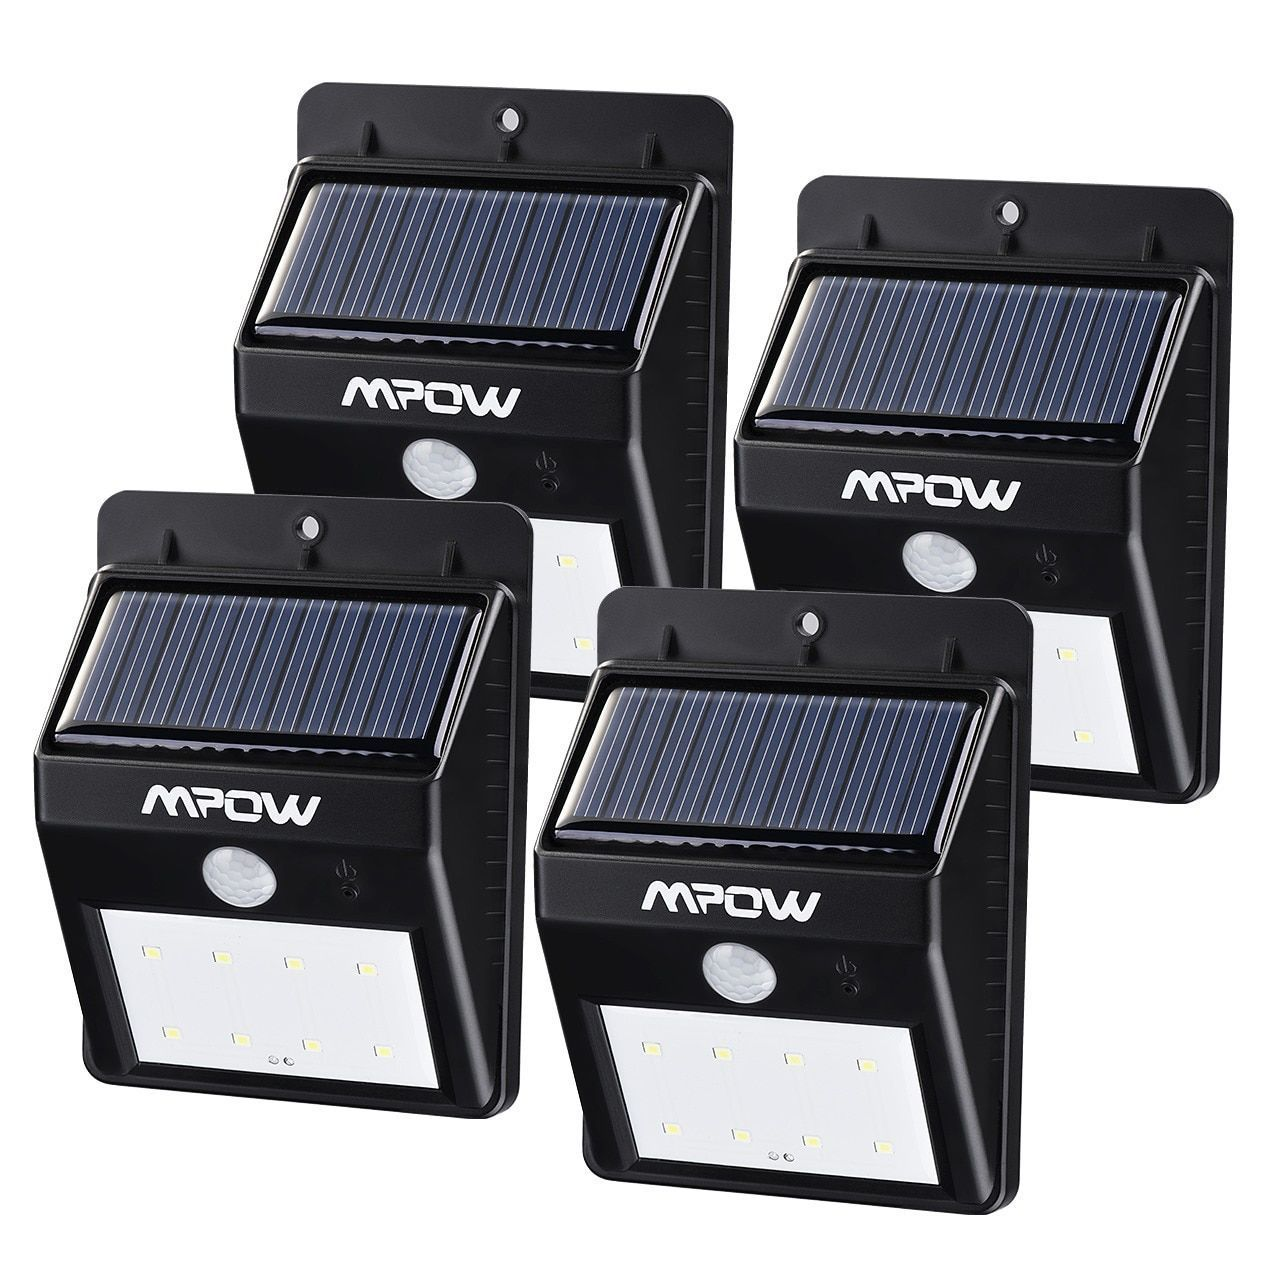 Mpow solar powered wireless security motion sensor light outdoor 8 mpow solar powered wireless security motion sensor light outdoor 8 led bulb lamp aloadofball